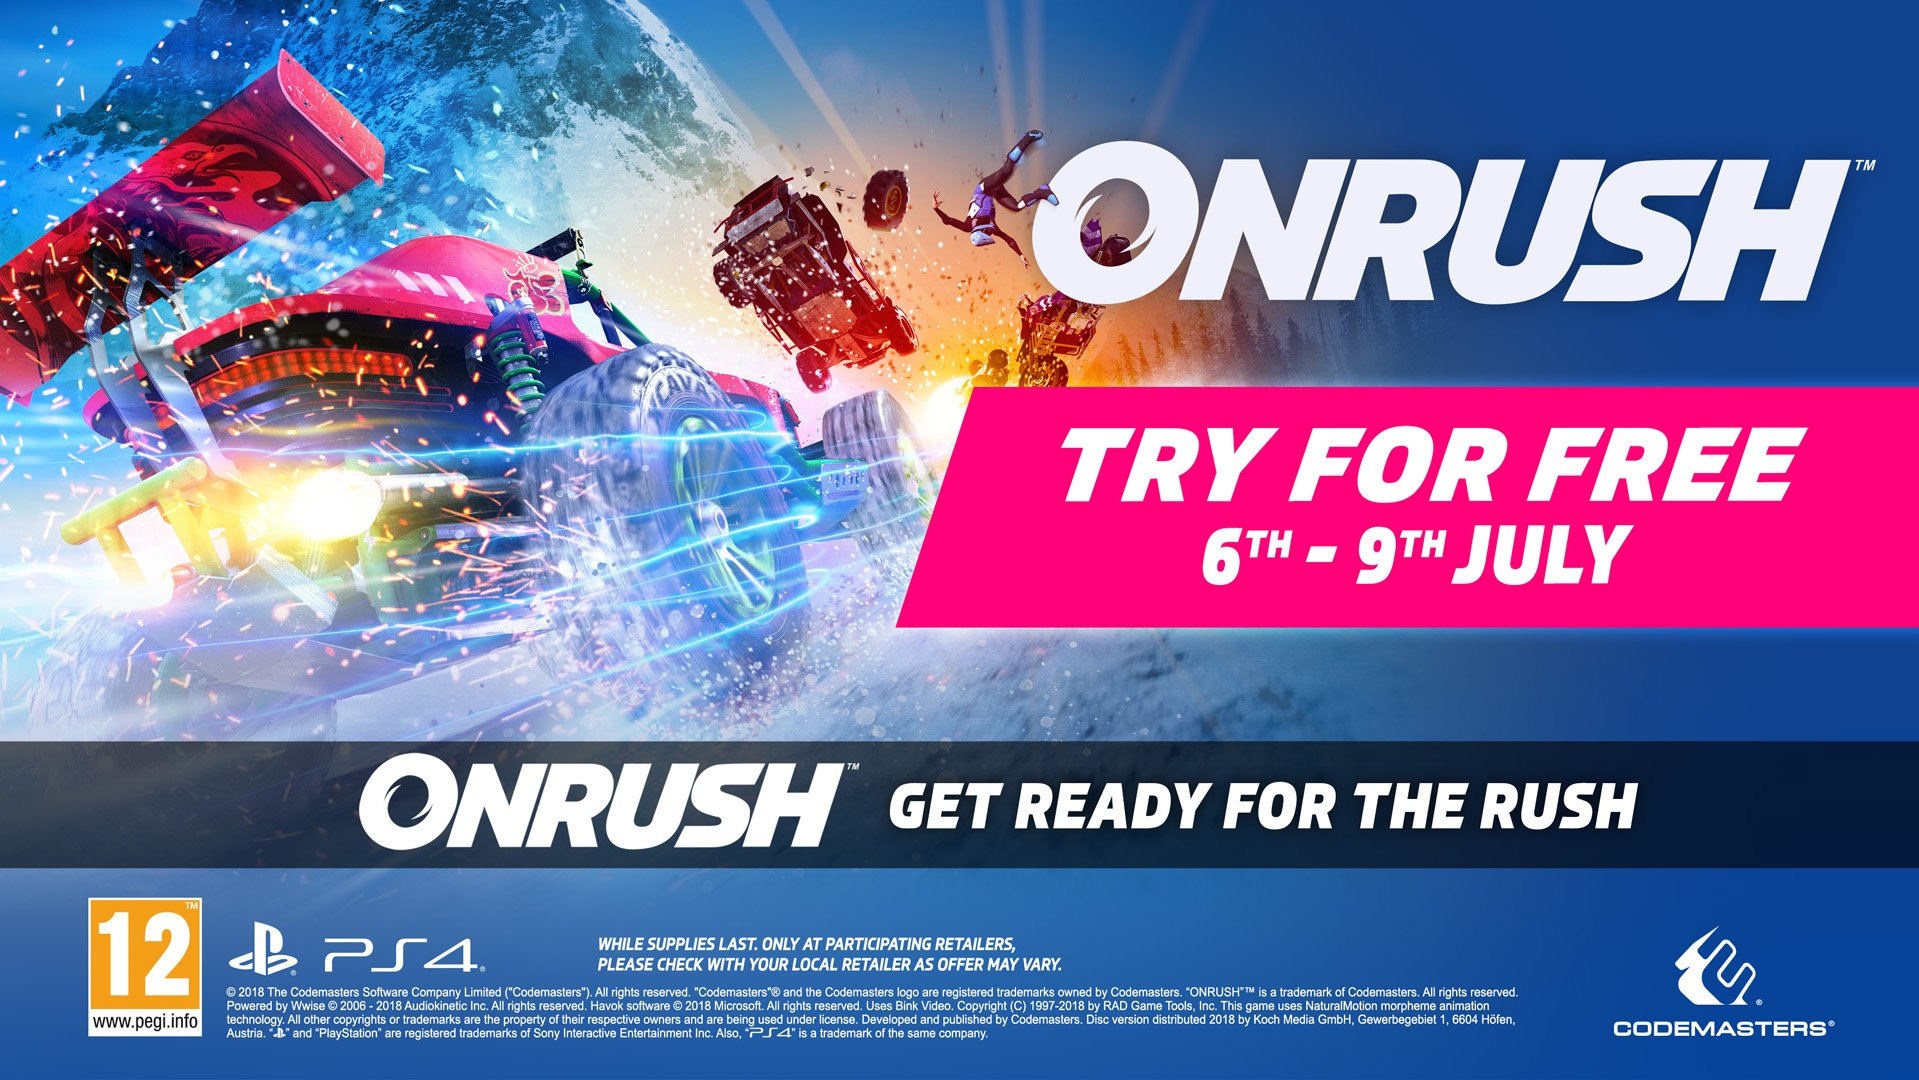 OnRush free this weekend and currently half price for PlayStation Plus subscribers